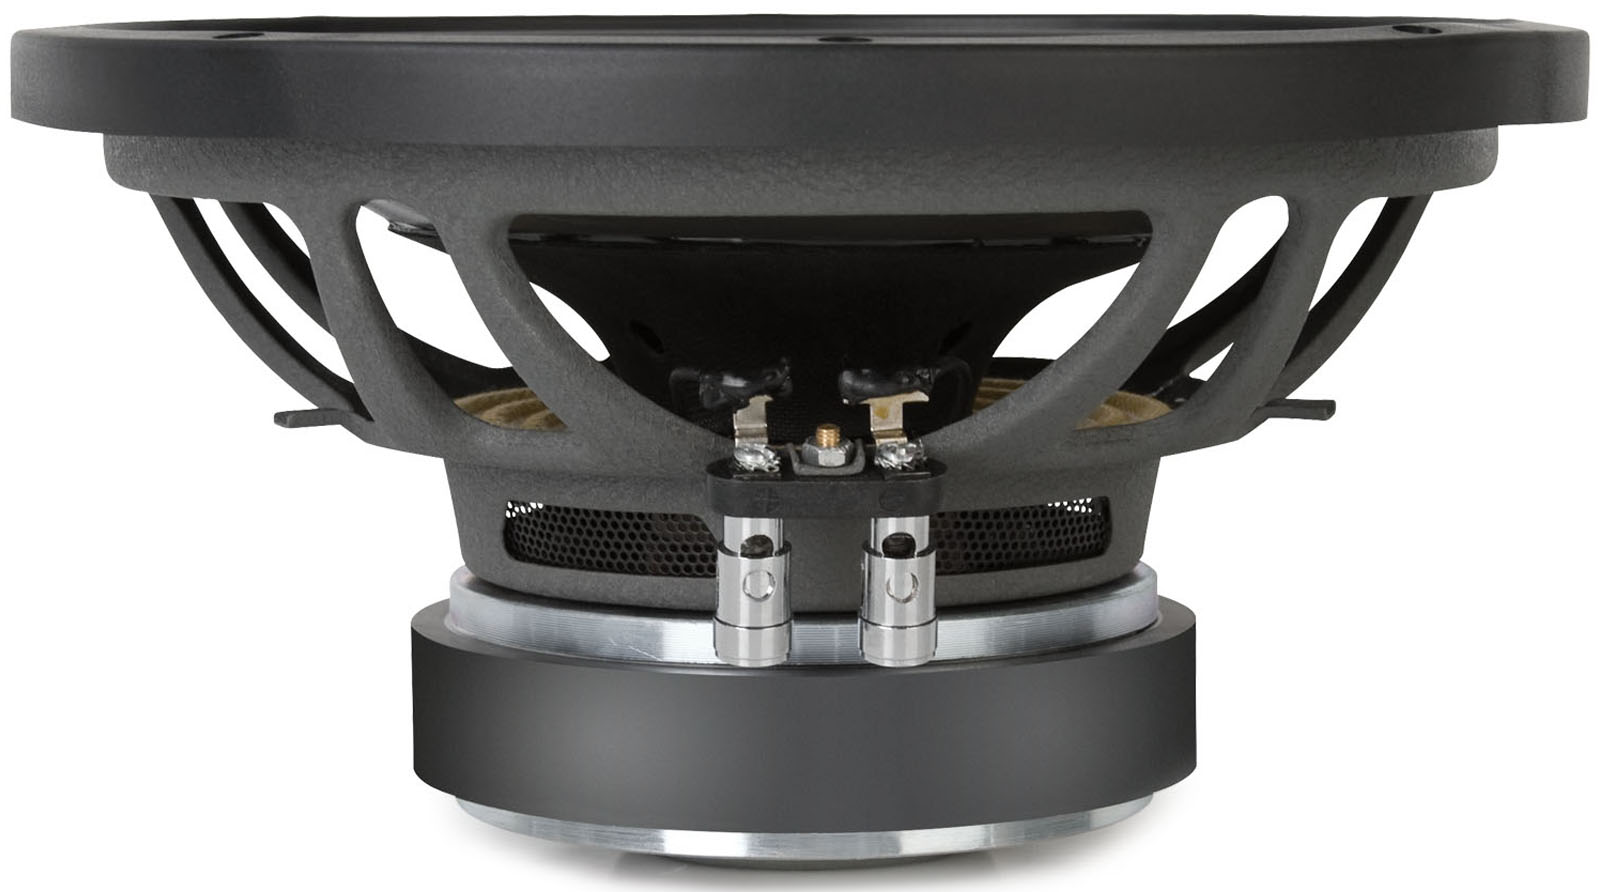 Rts8 44 Roadthunder 8 Car Audio Subwoofer Mtx Serious Inch Jl About Sound